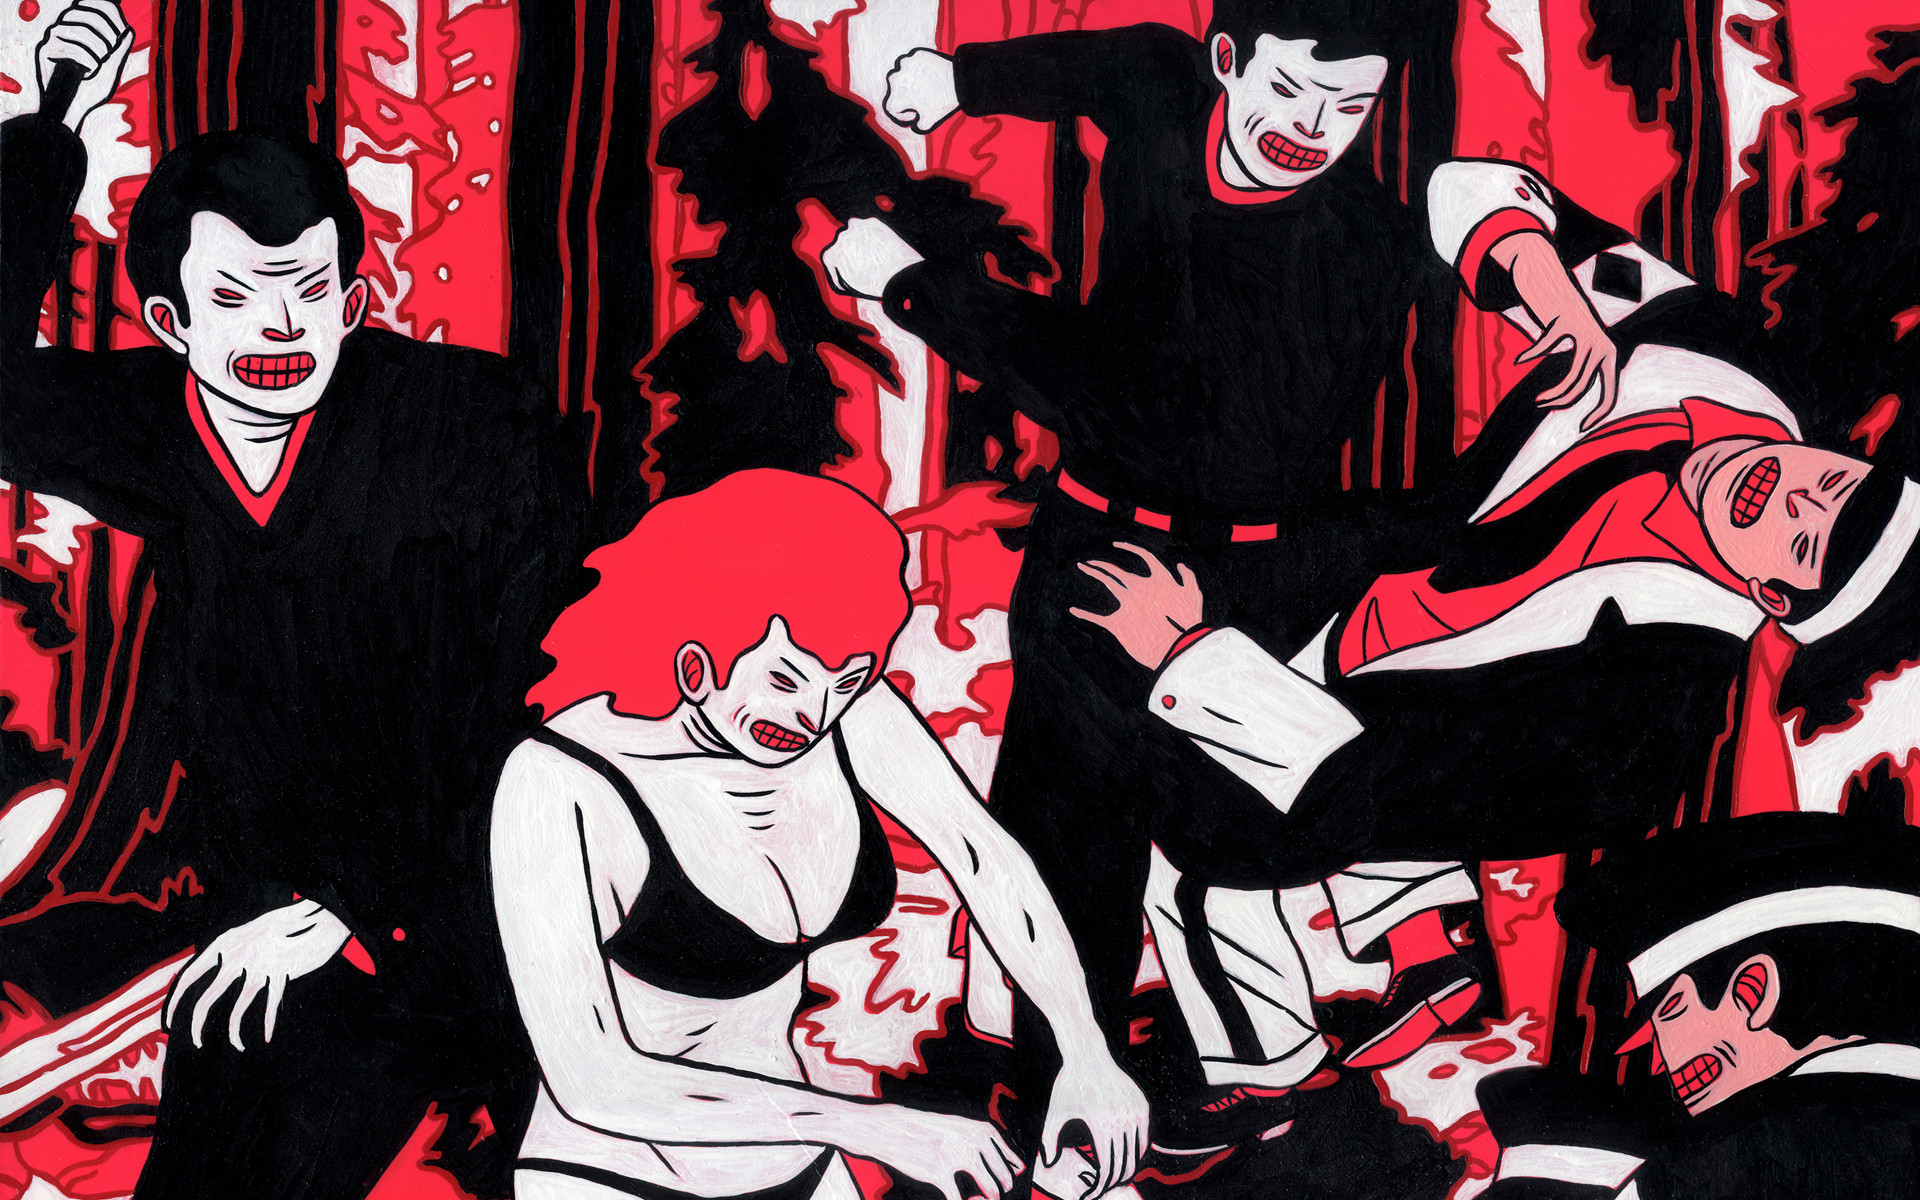 Res: 1920x1200, Cleon Peterson